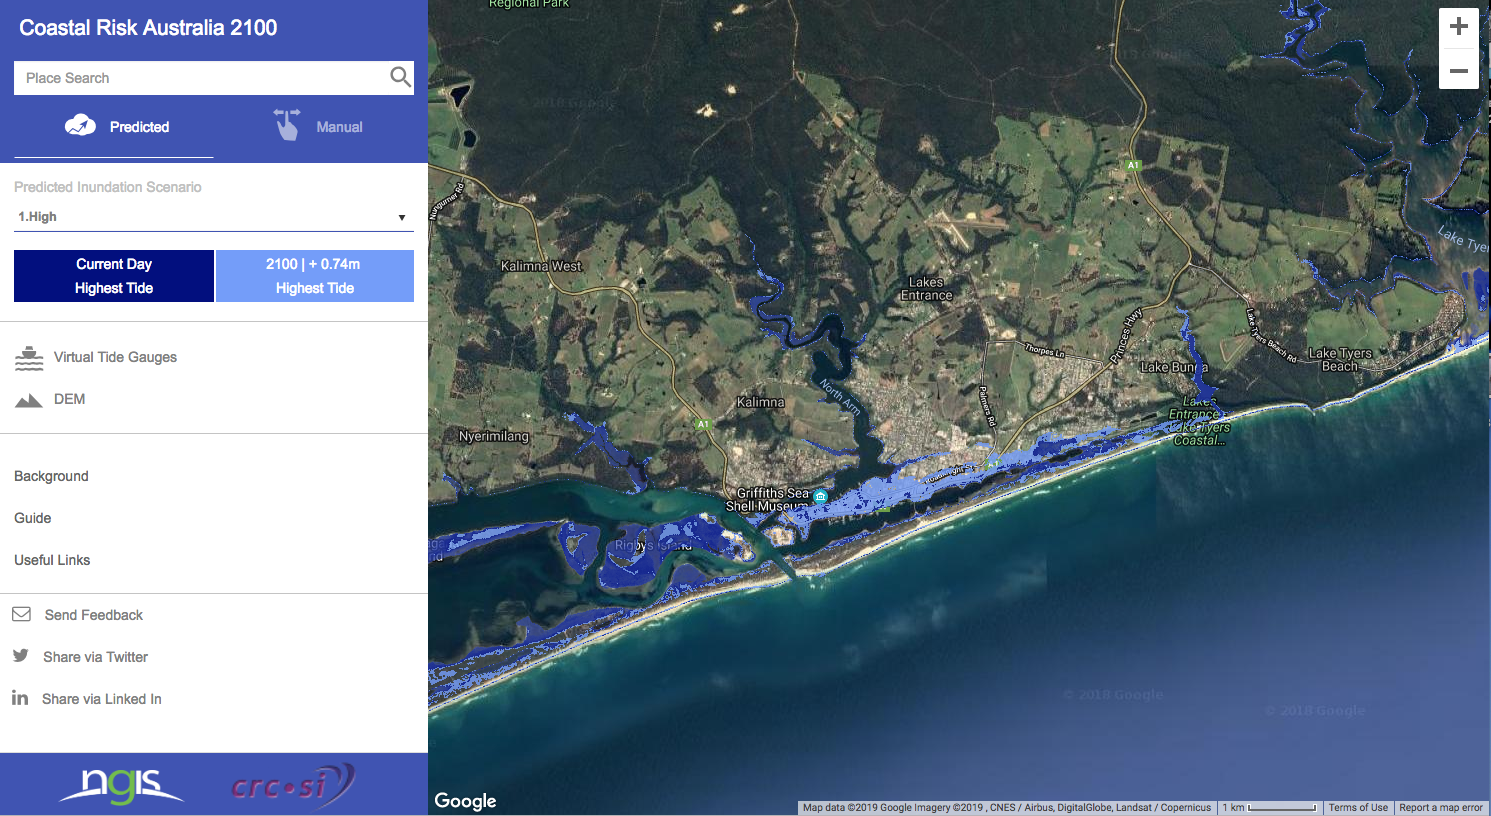 This map prepared by Coastal Risk Australia models high tides in 2100 around Lakes Entrance and the Gippsland Lakes. It presumes a high emissions scenario, which is close to the present course. Dark blue shows present day highest tides; light blue models highest tides in 2100. This tool can be accessed for any site on the Australian coast at this site: http://coastalrisk.com.au/viewer